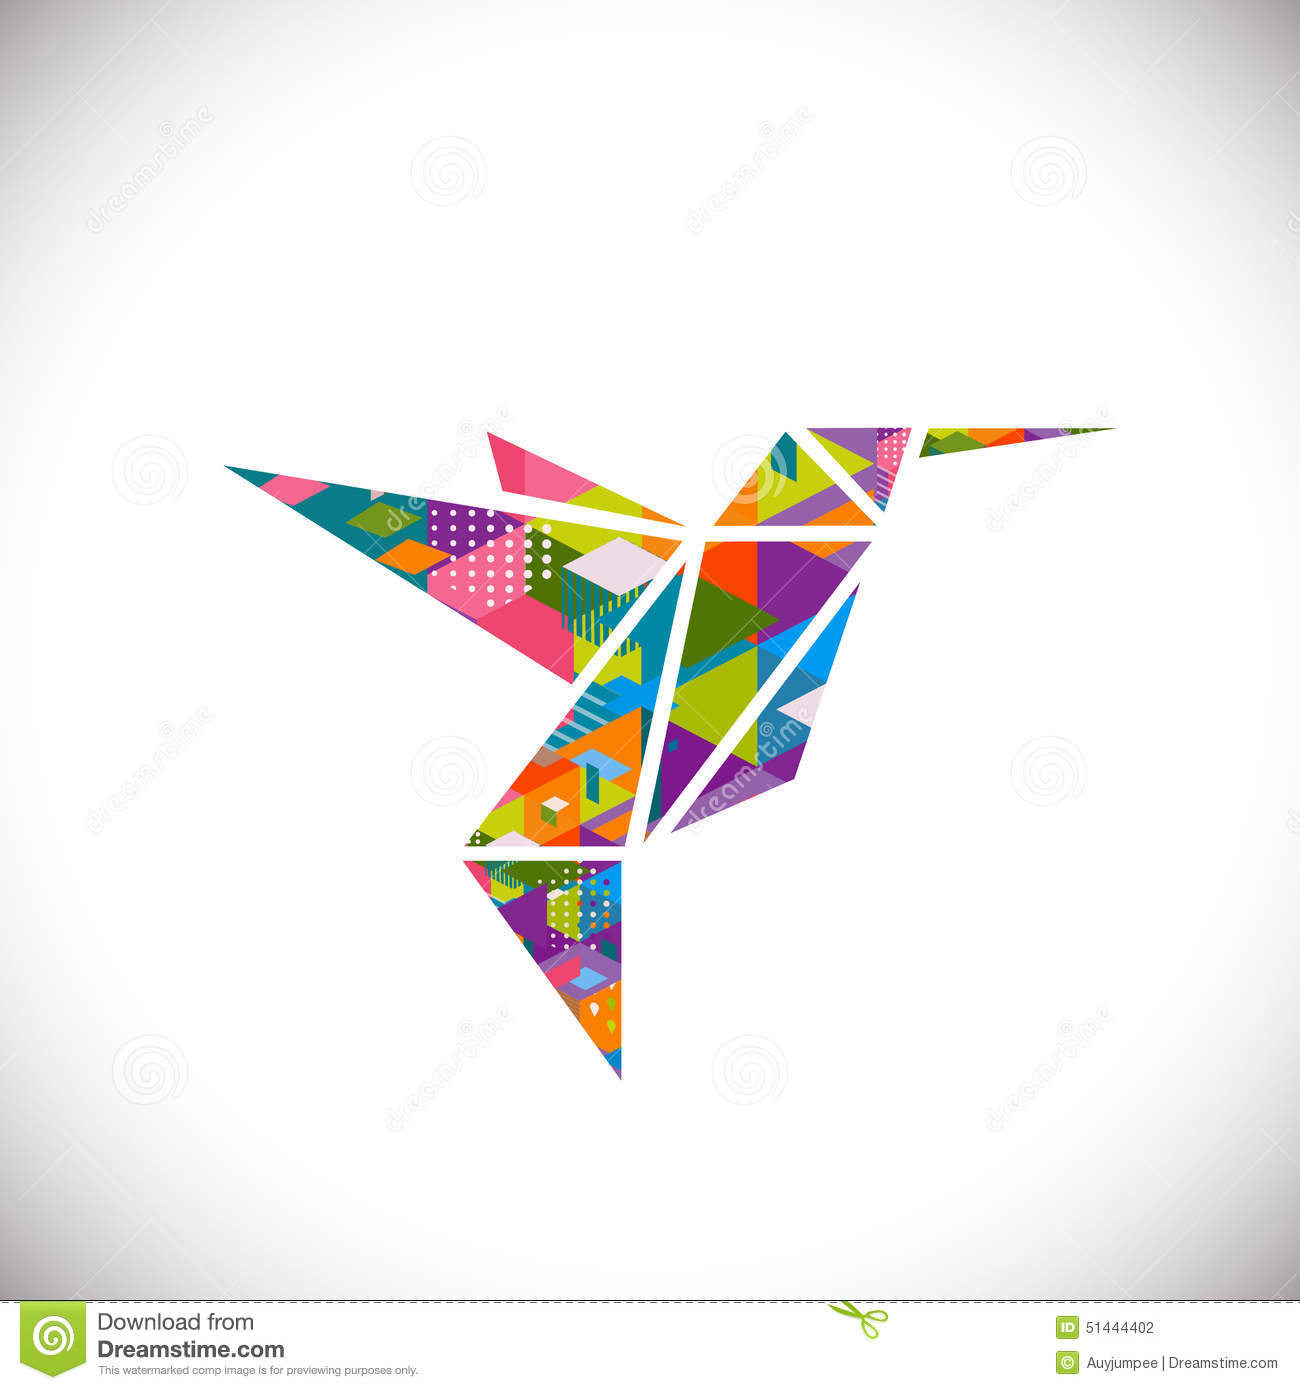 Humming bird symbol with colorful geometric graphic in for Triangle concept architecture